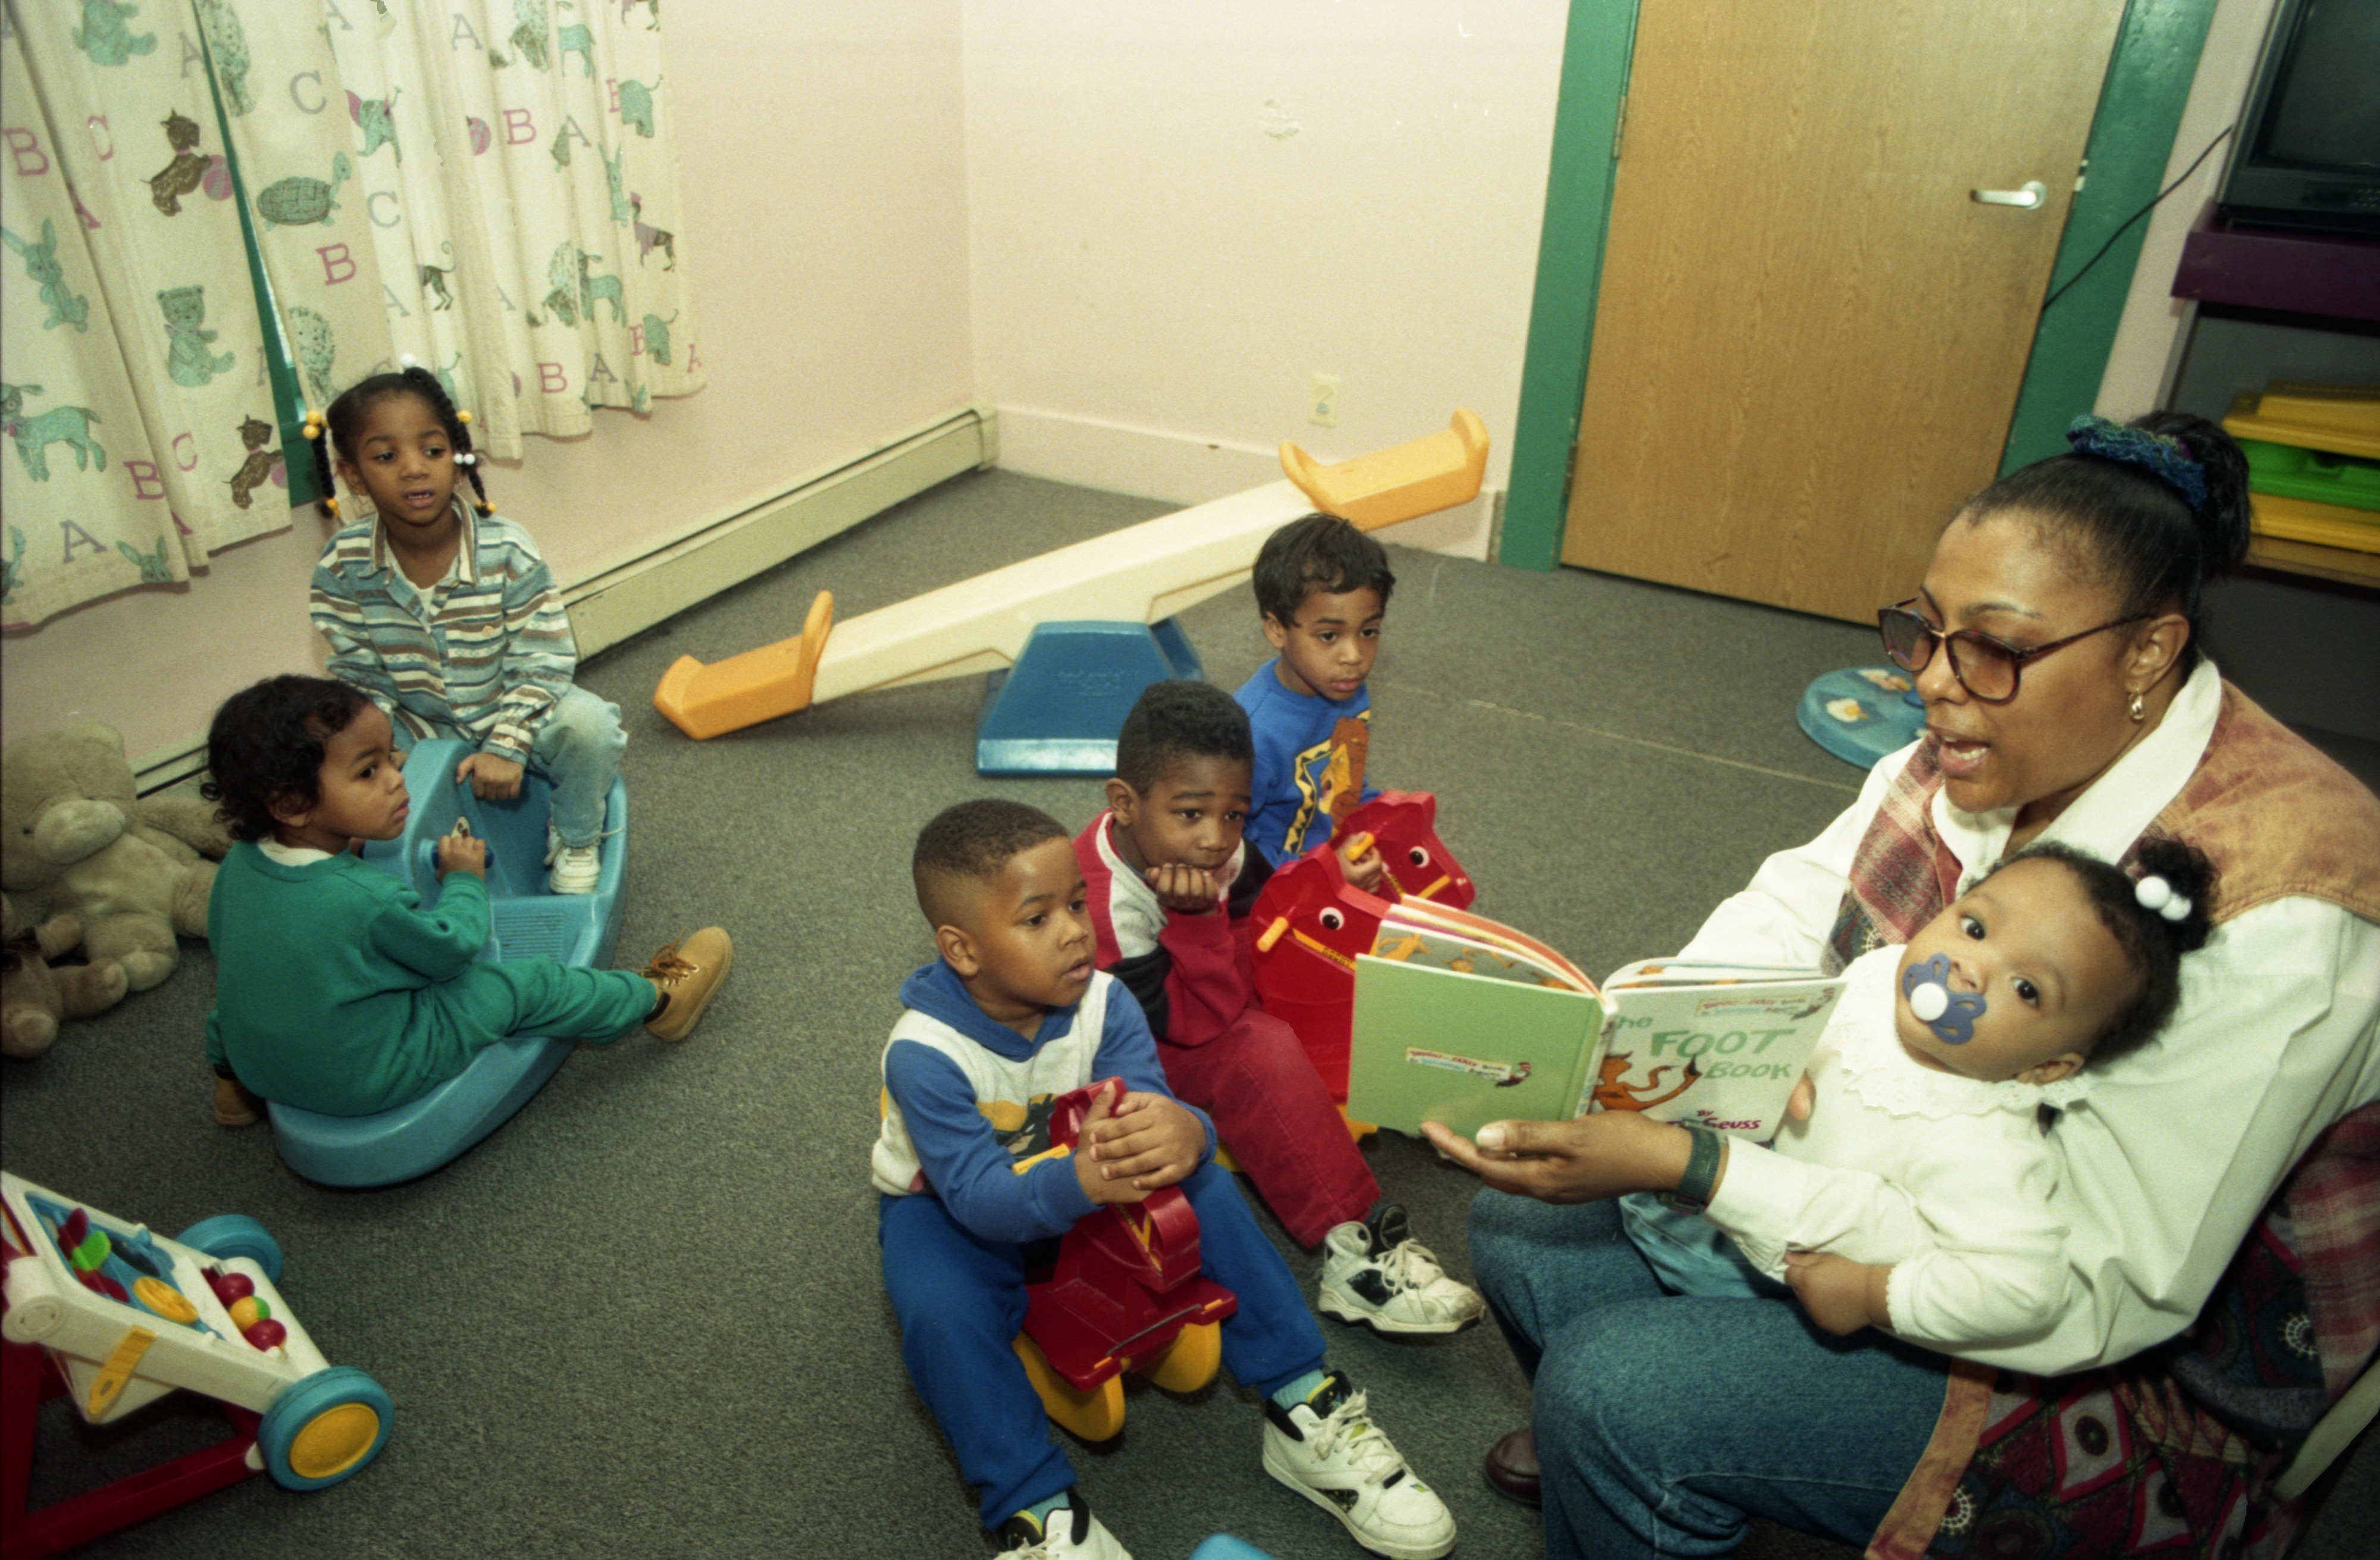 Cheryl Bass-Lee Reads To Children At Noah's Ark Learning Center In Ypsilanti, March 22, 1995 image